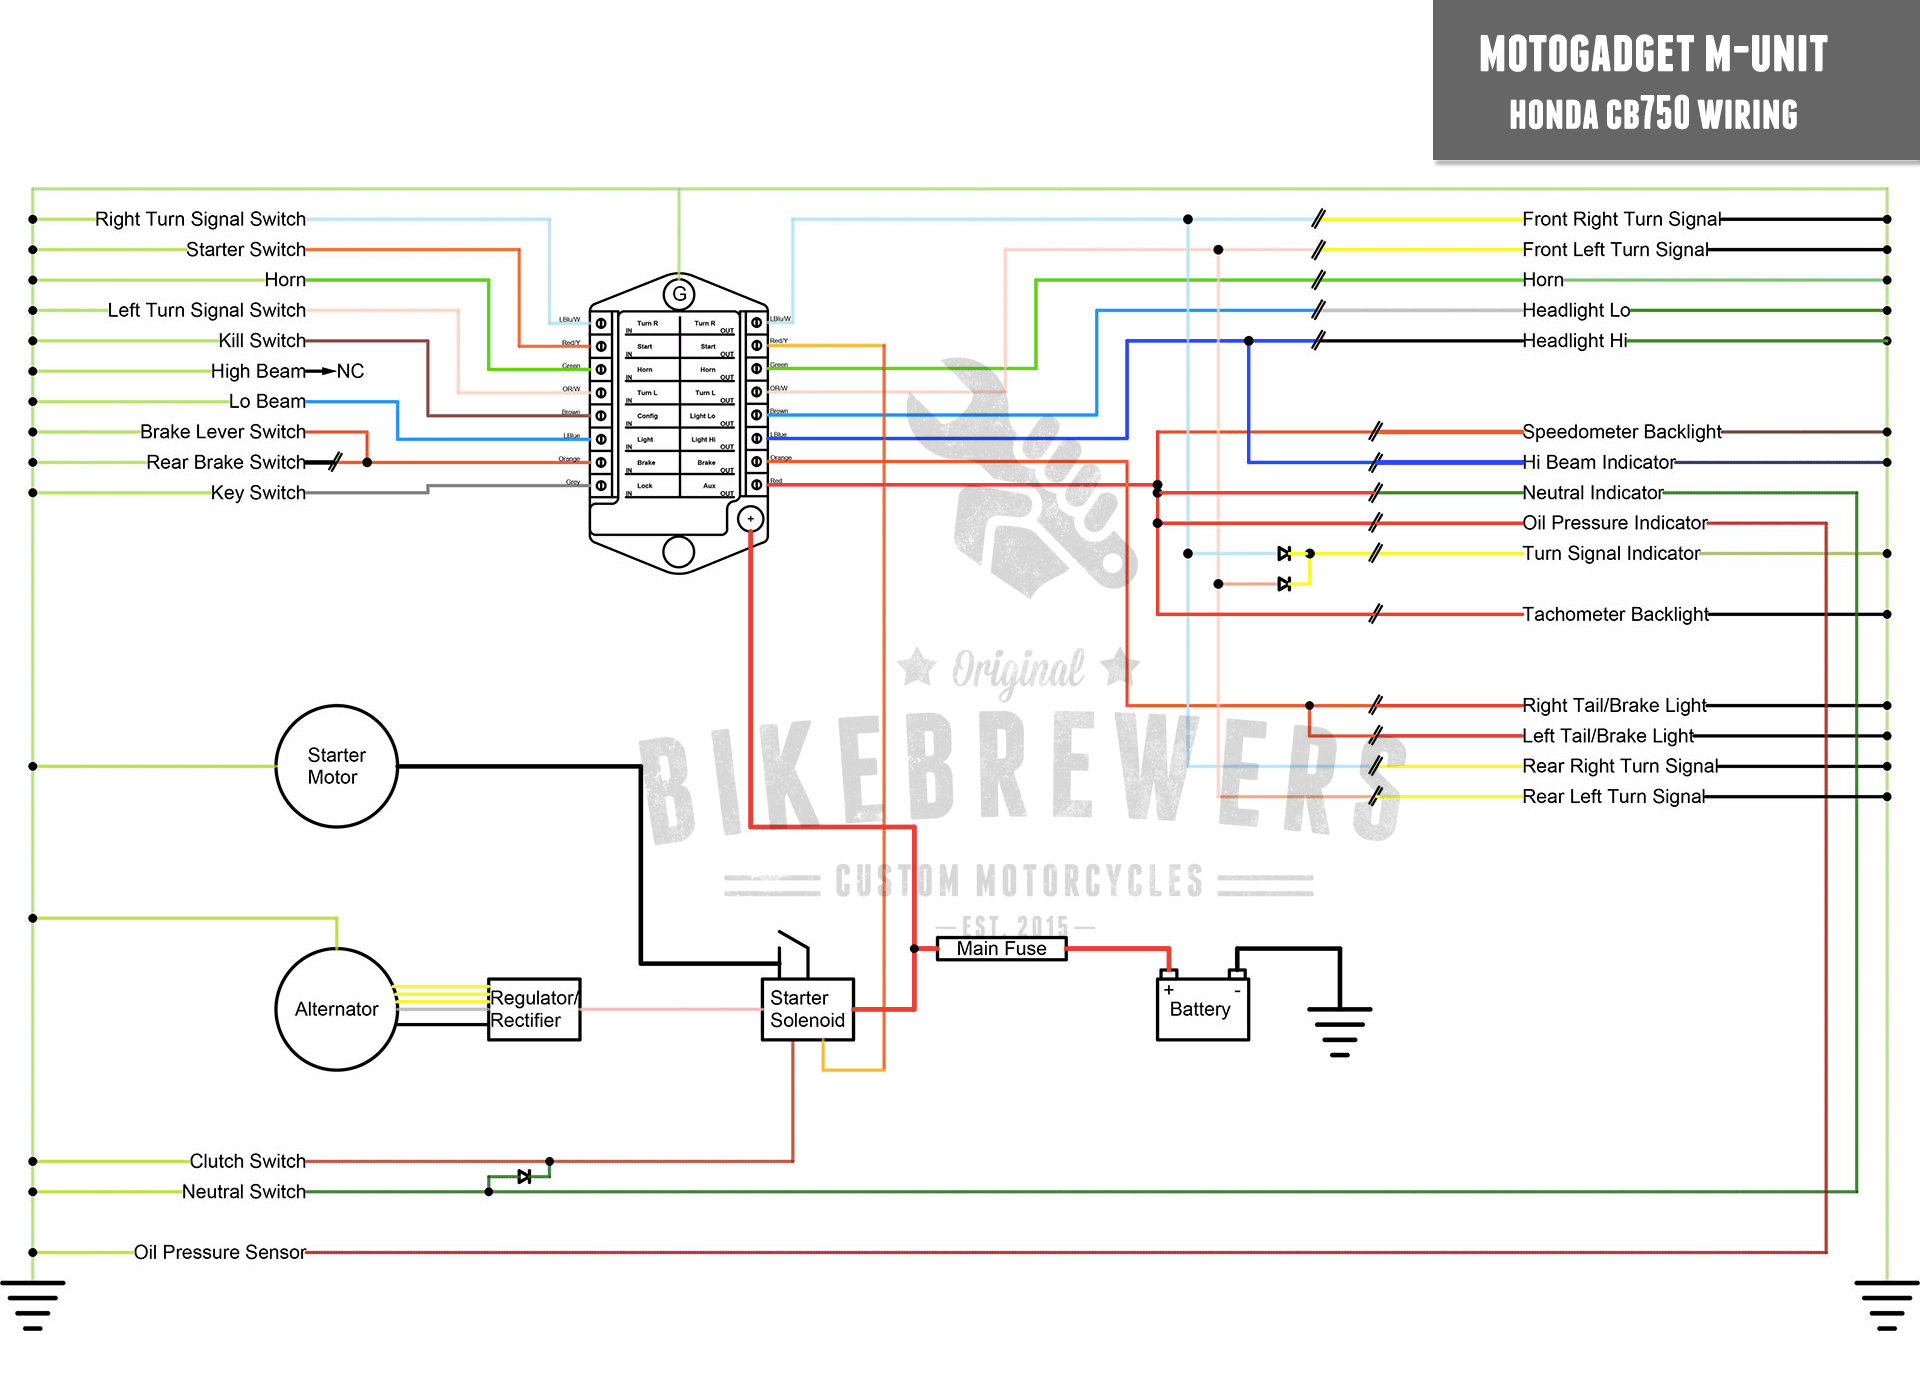 Honda Cdi Box Wiring Diagram Motogadget M Unit Bikebrewers Com Rh 8 Pin